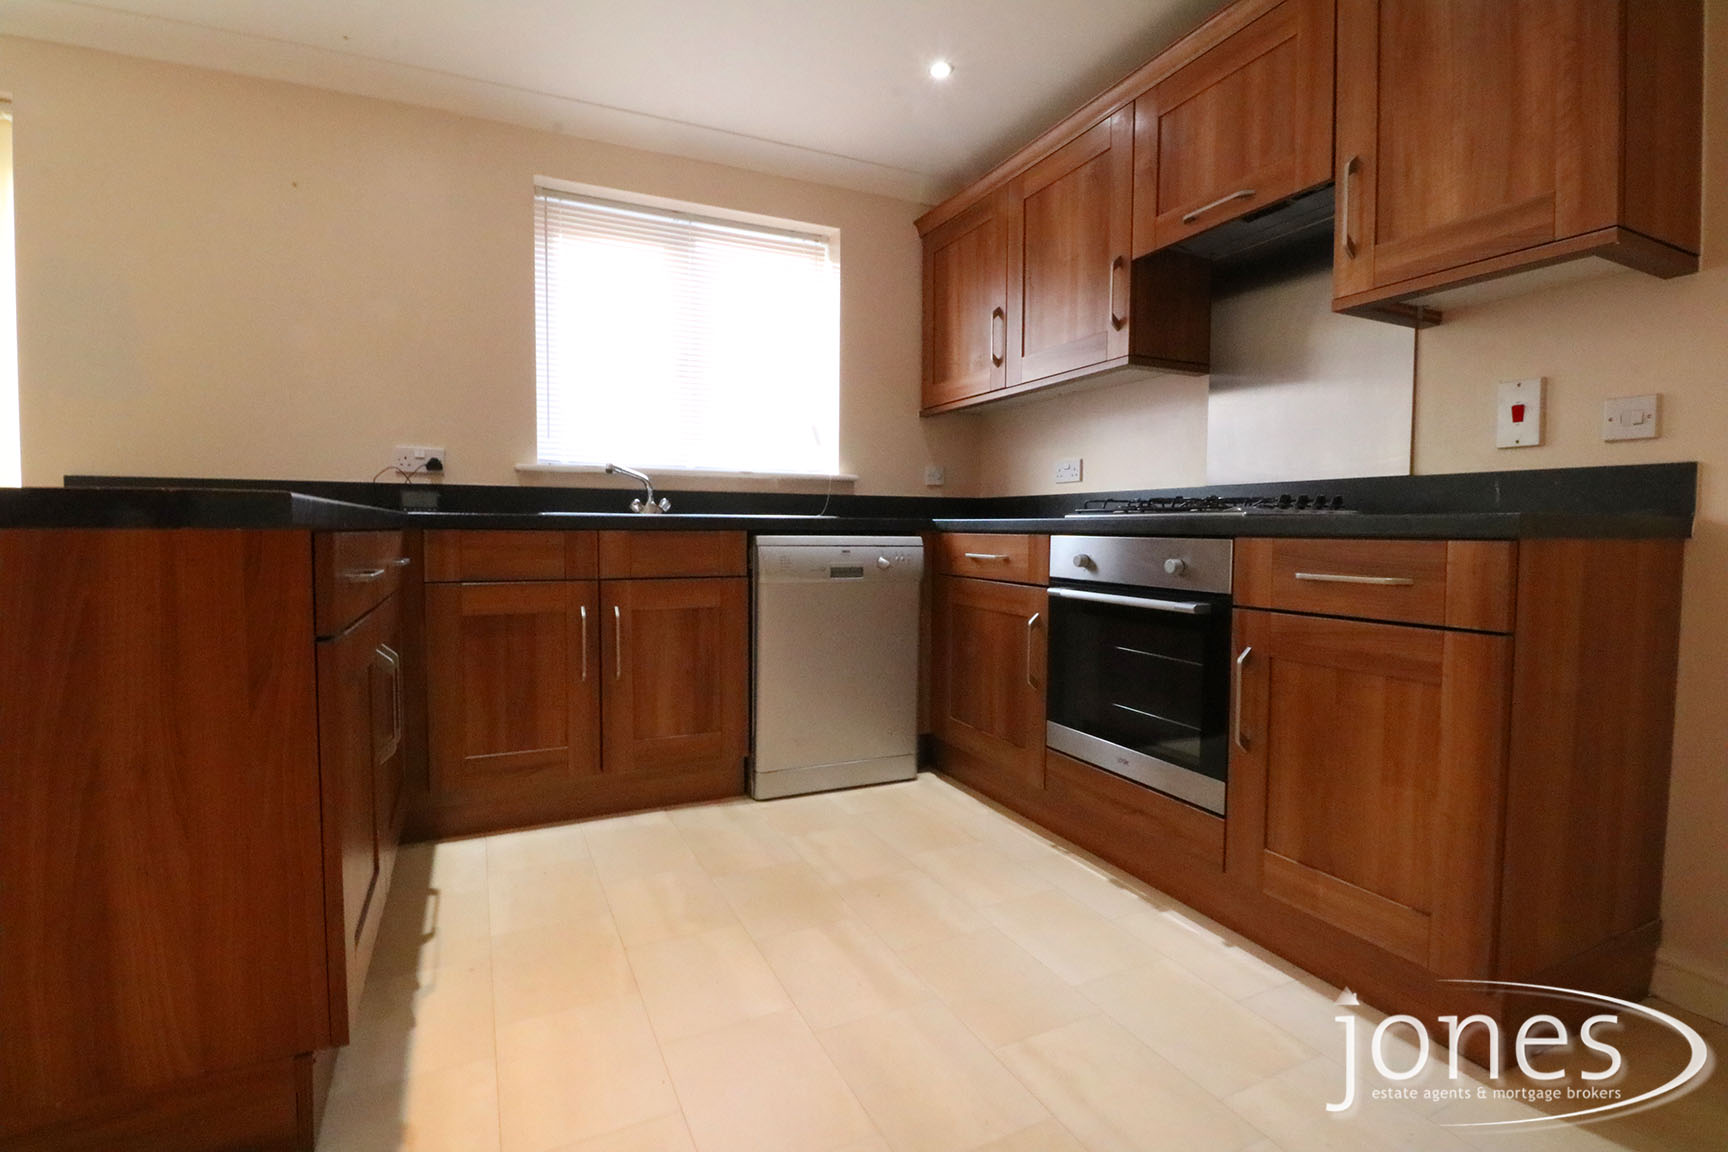 Home for Sale Let - Photo 03 Timothy Court, Stockton on Tees, TS18 3AU